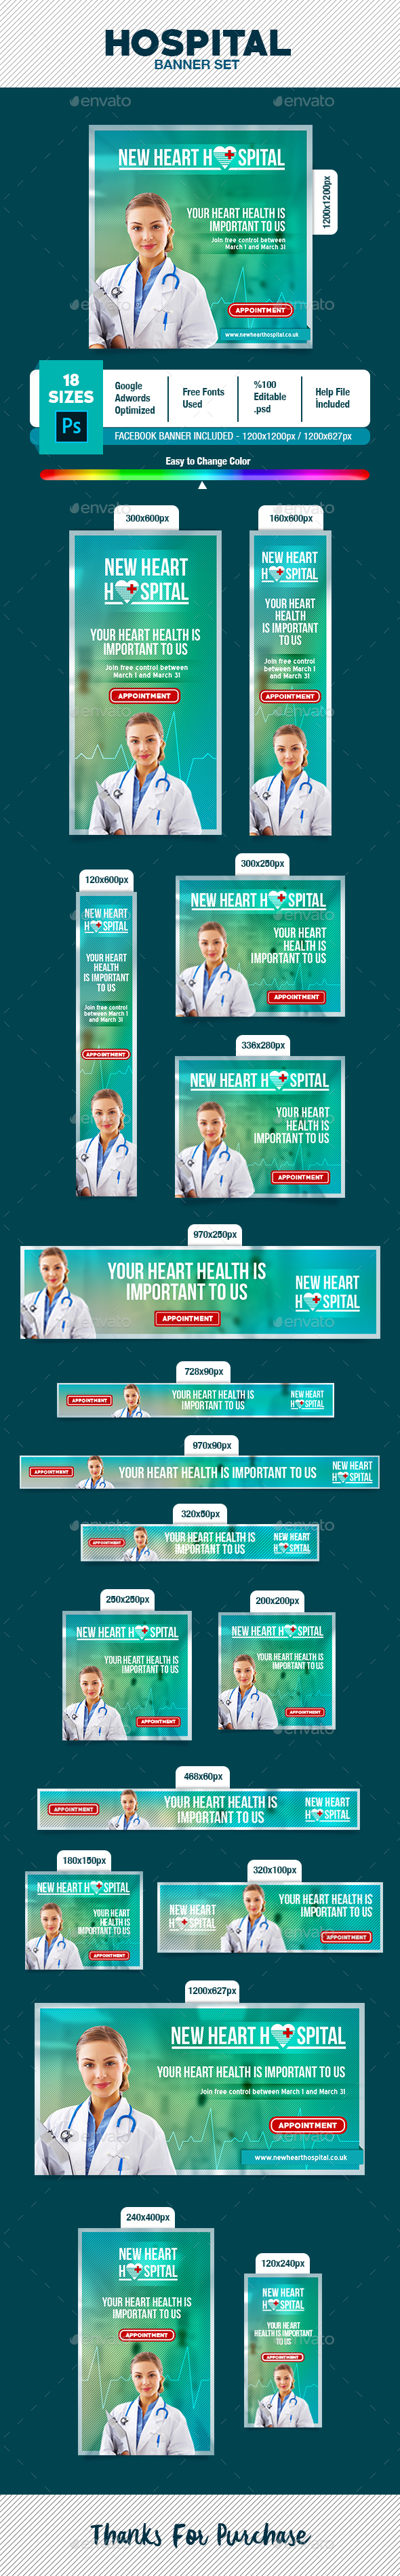 Hospital Banner Set - Banners & Ads Web Elements